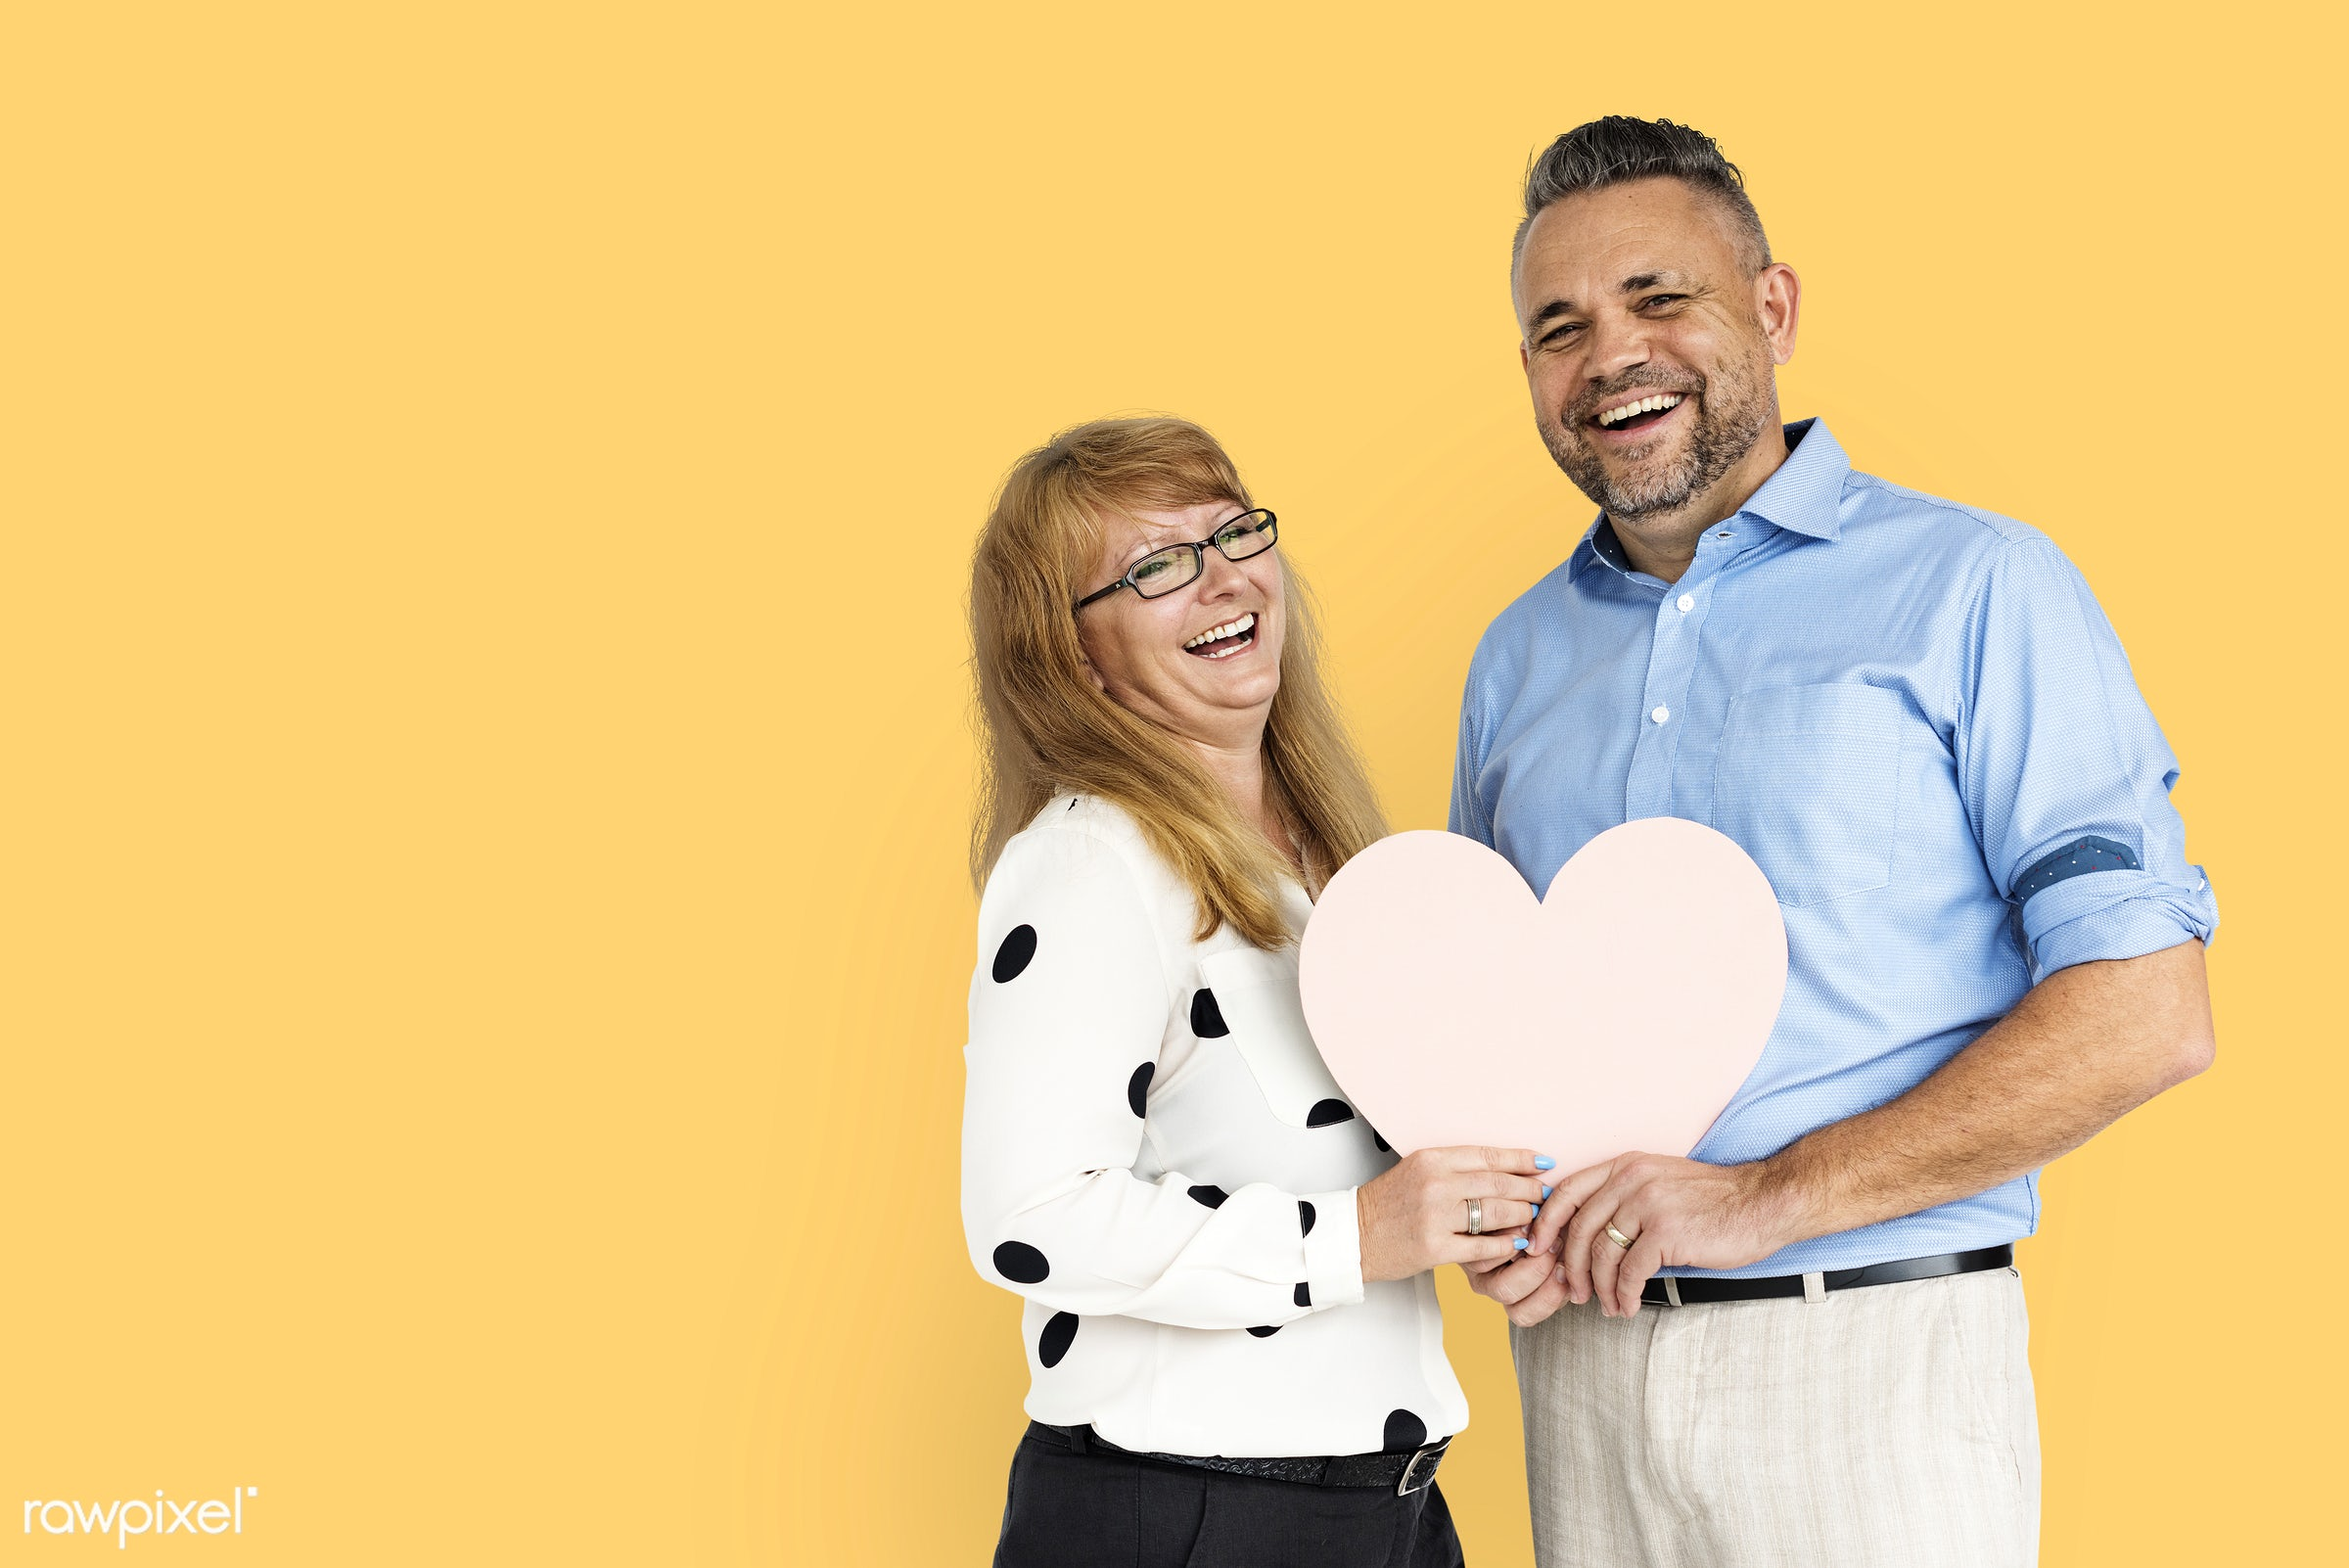 studio, person, yellow, people, together, caucasian, love, woman, family, care, cheerful, smiling, affection, heart,...